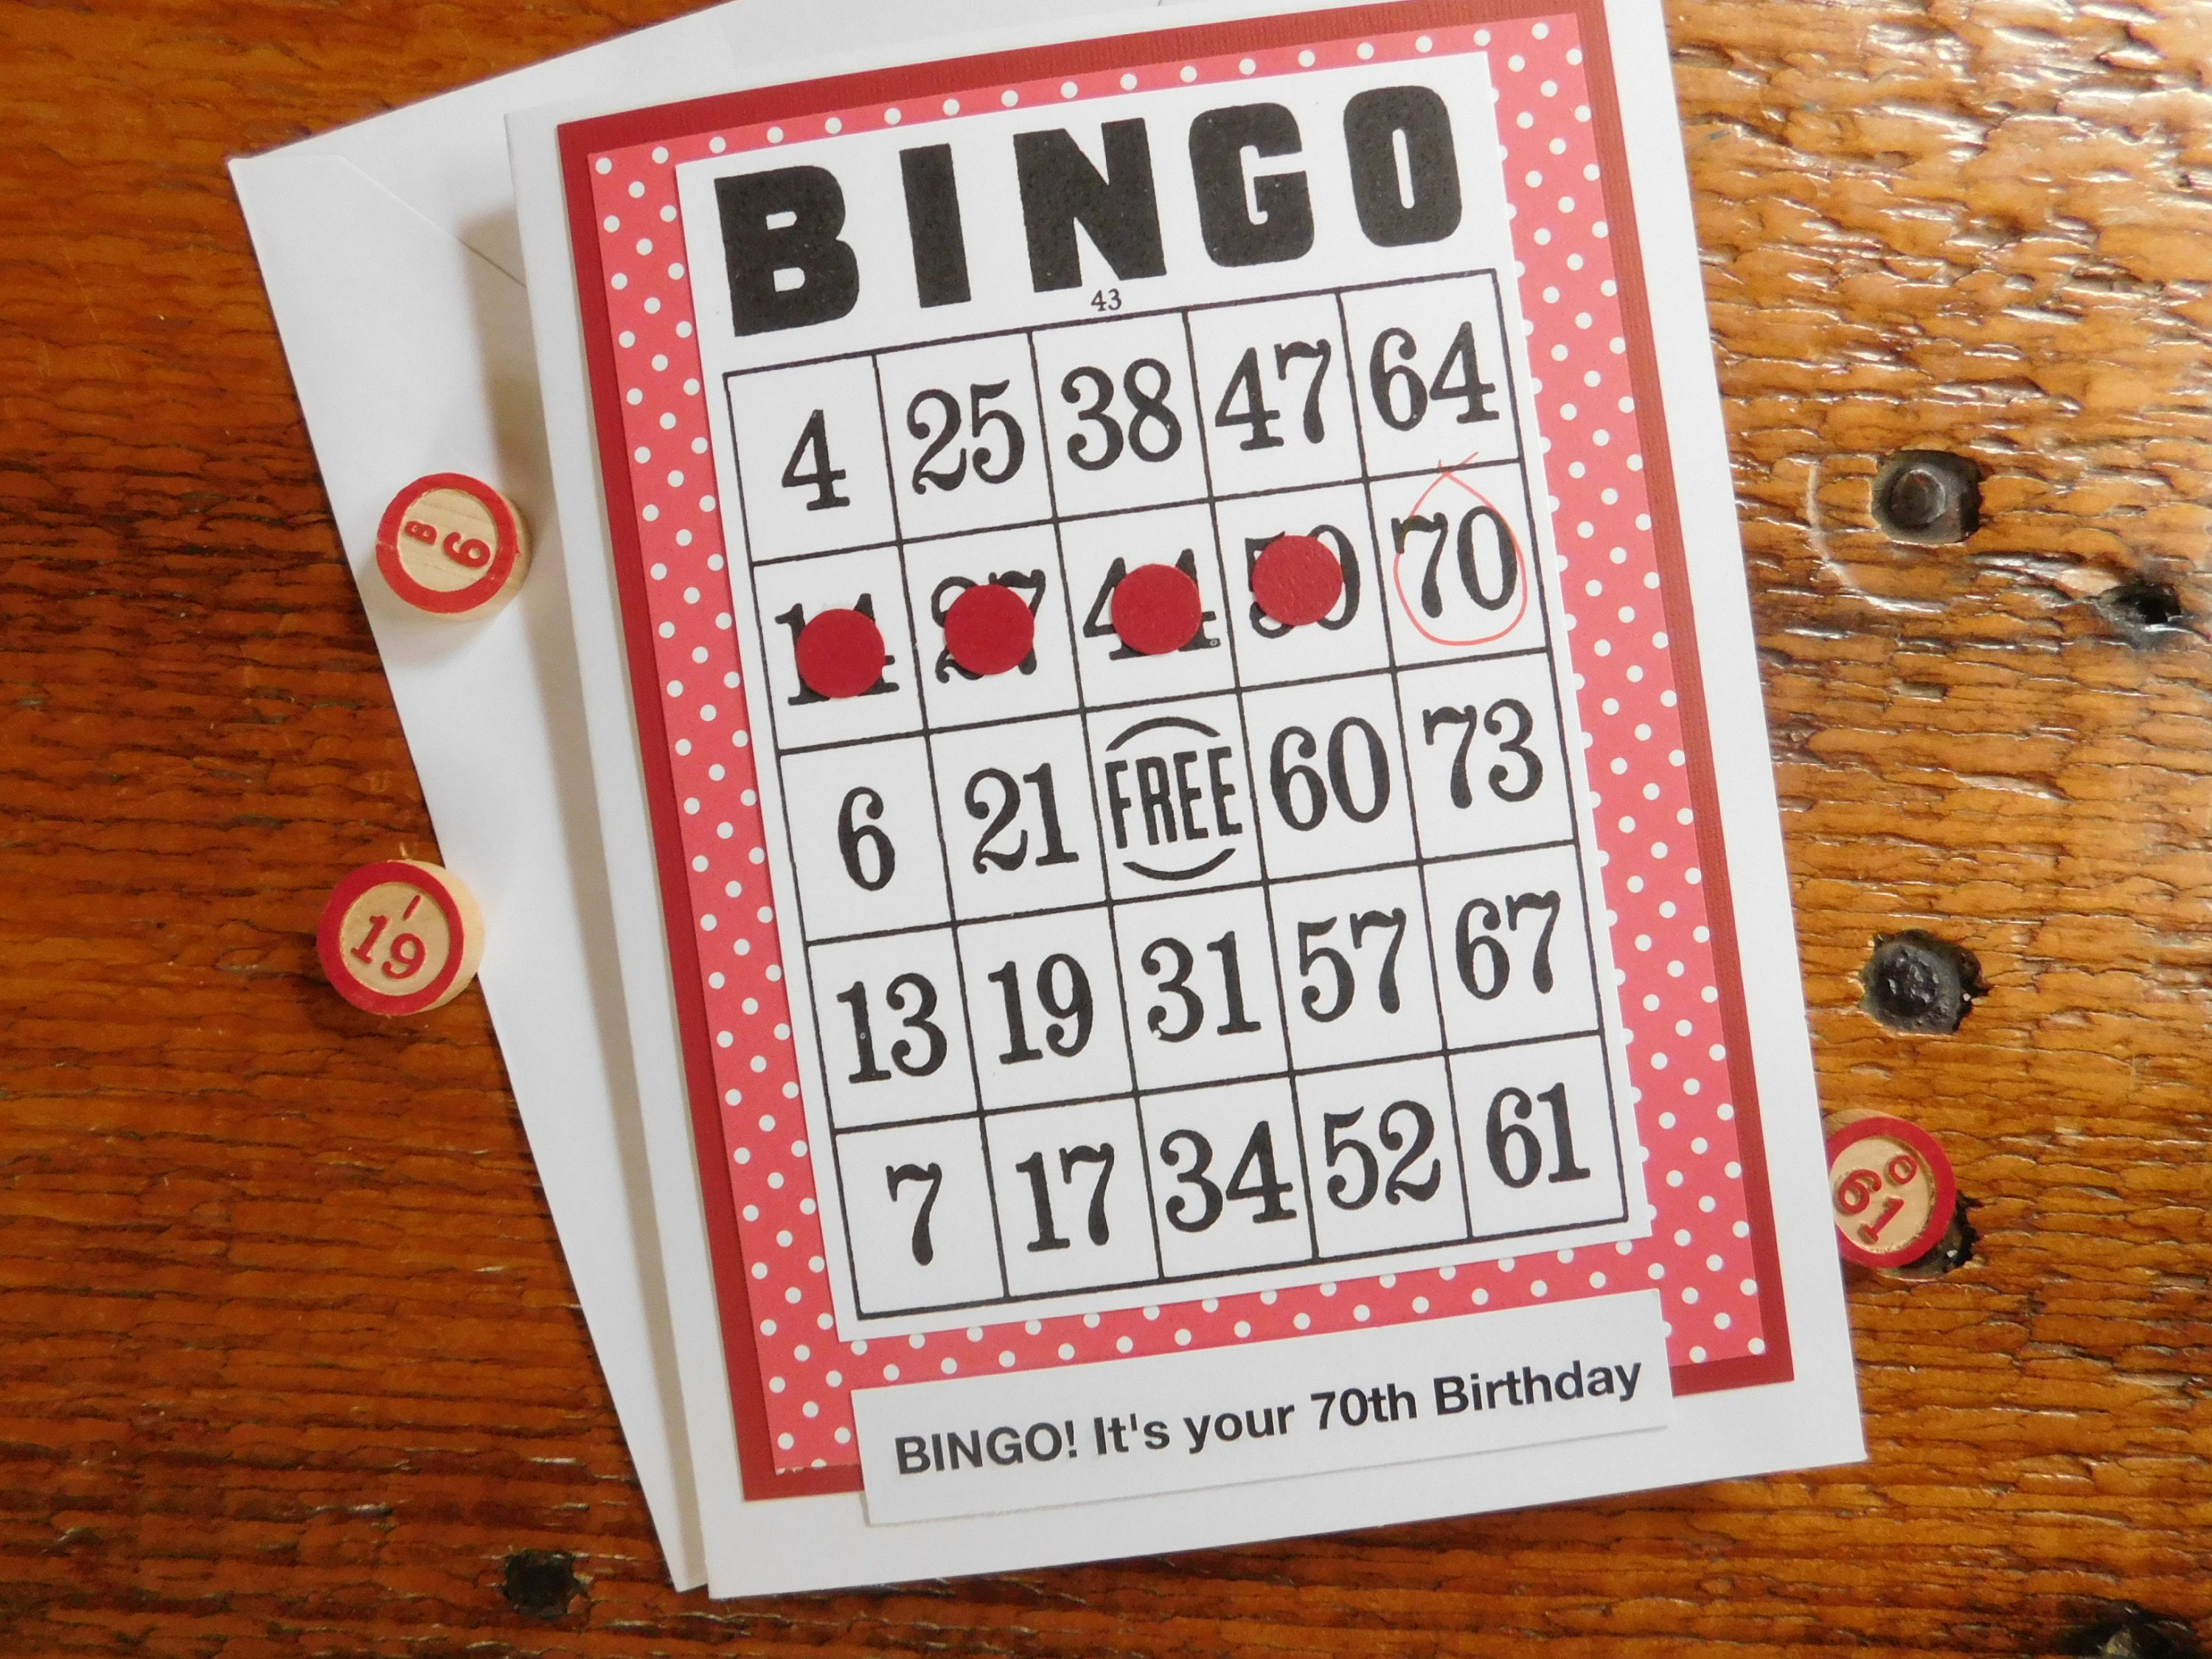 Bingo Birthday Greeting Card 70th Birthday Card Bingo